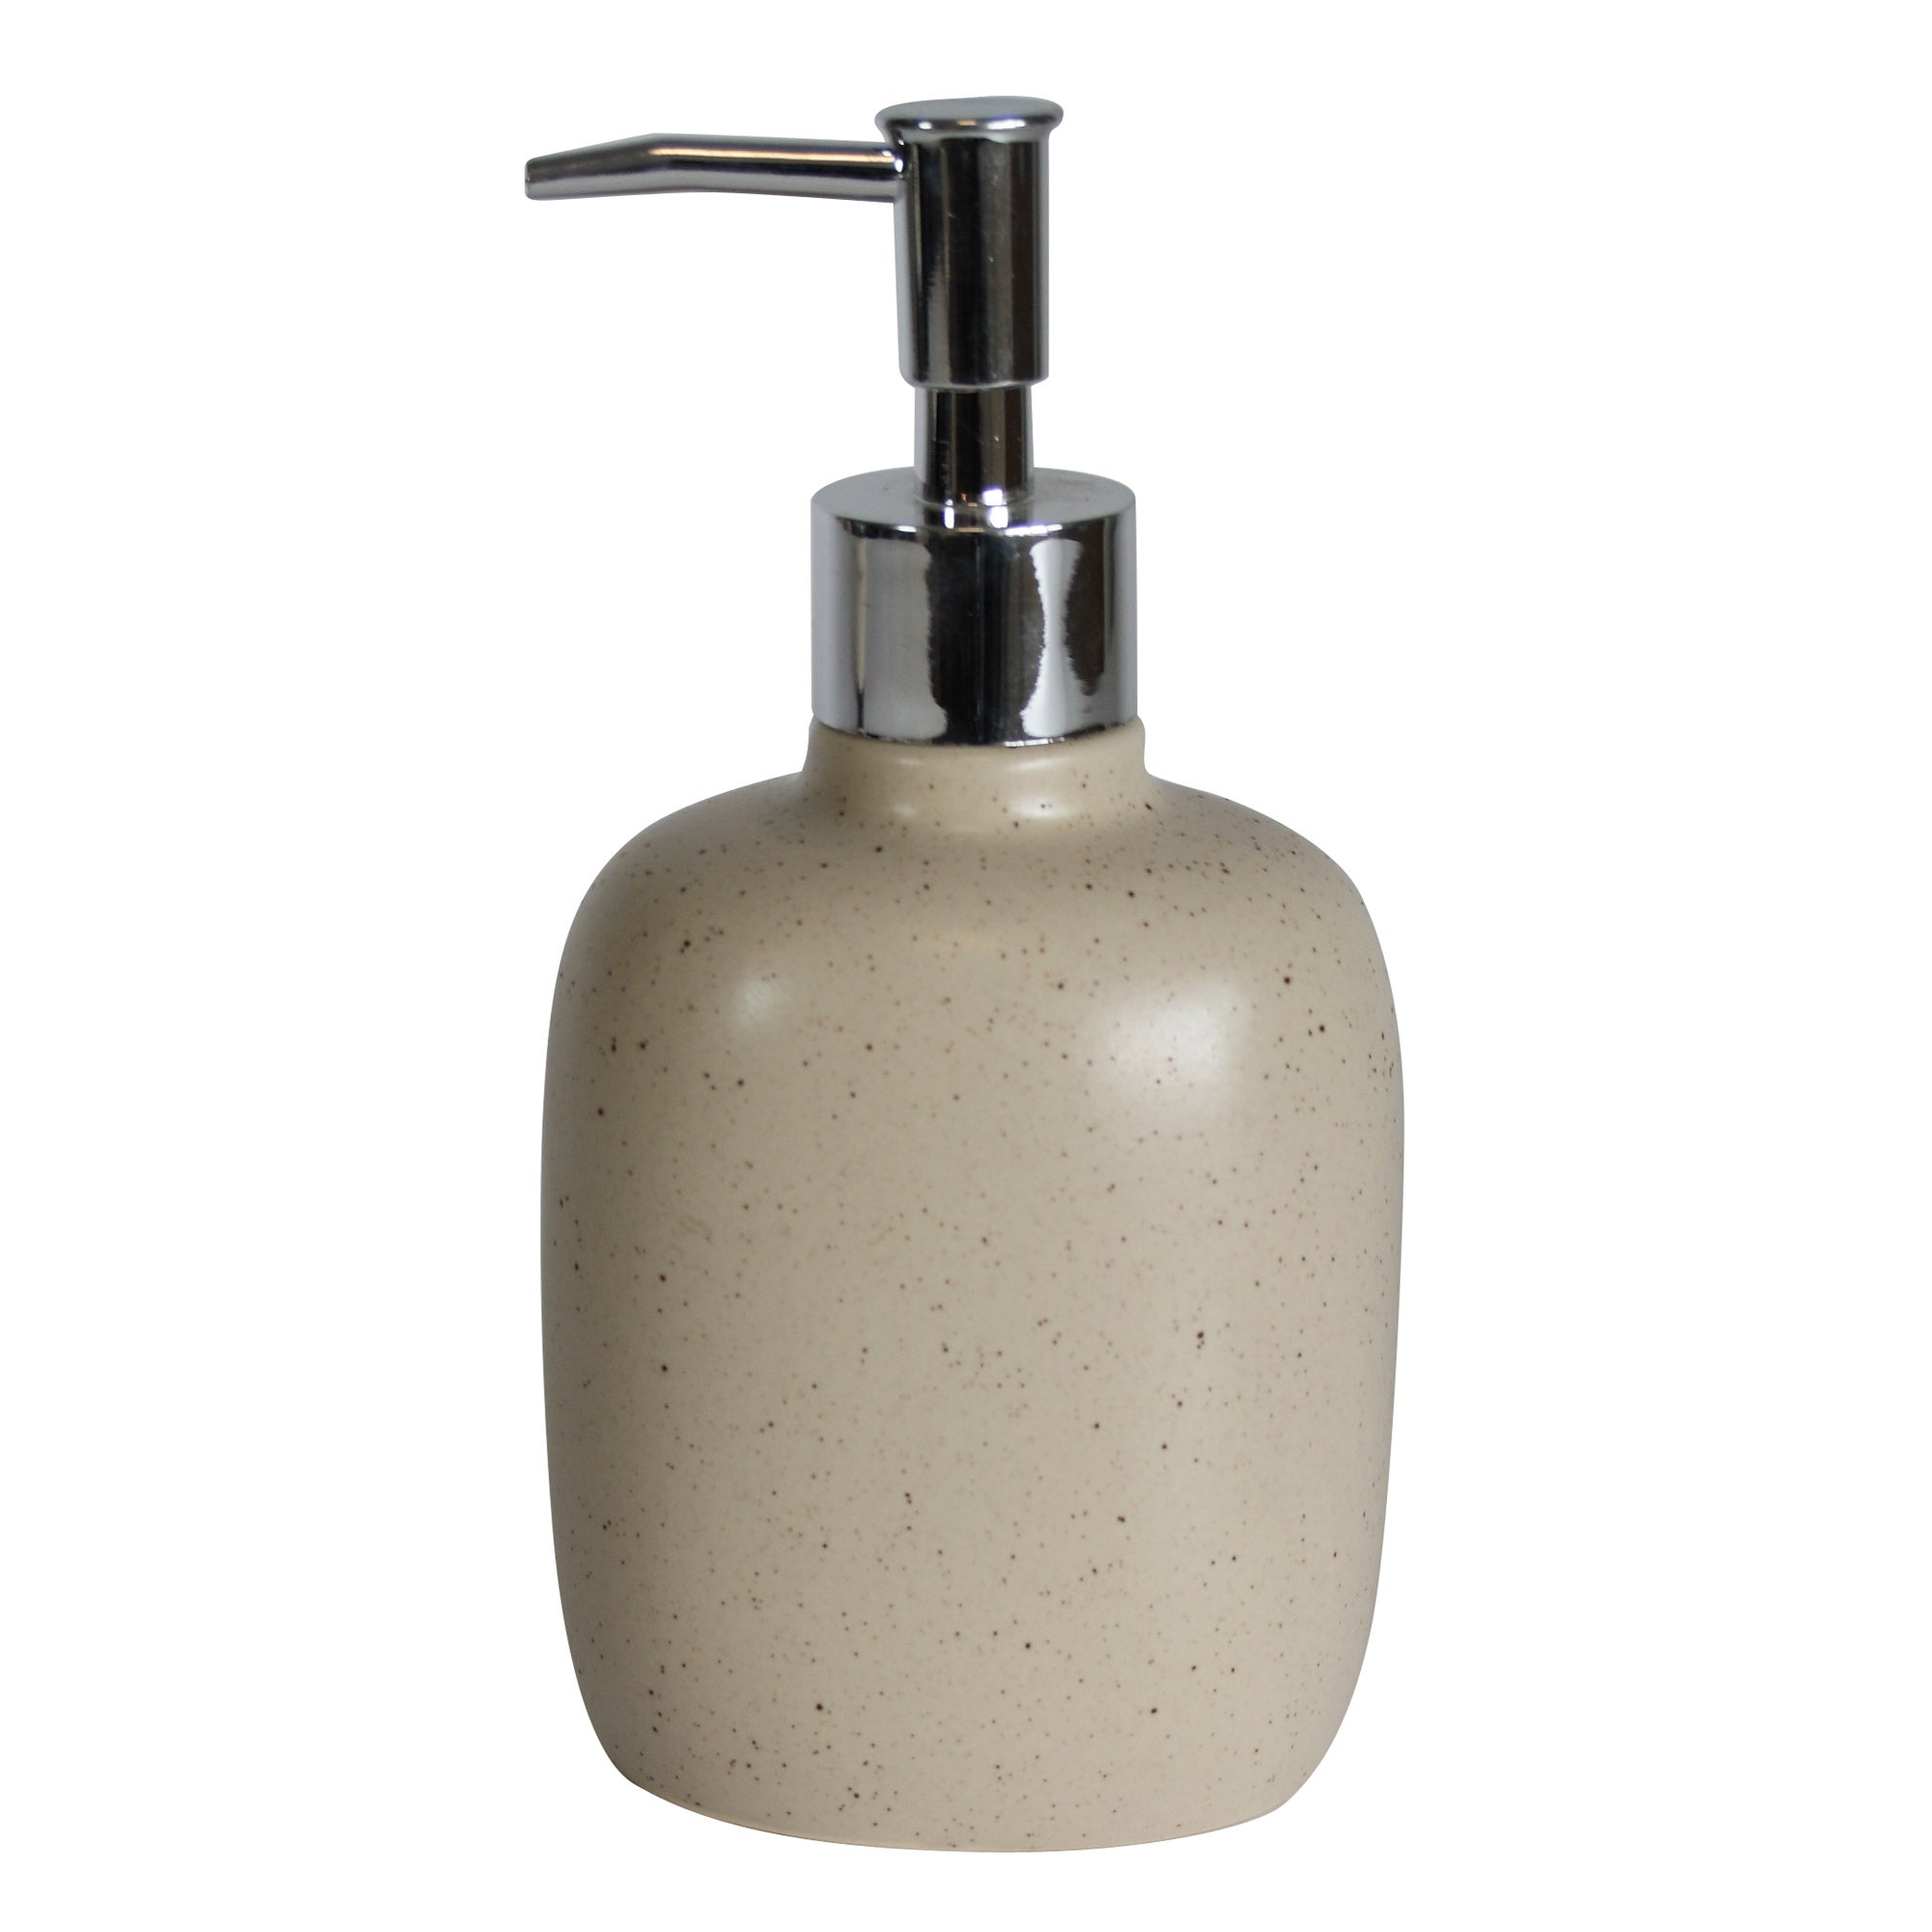 Pebble Collection Soap Dispenser